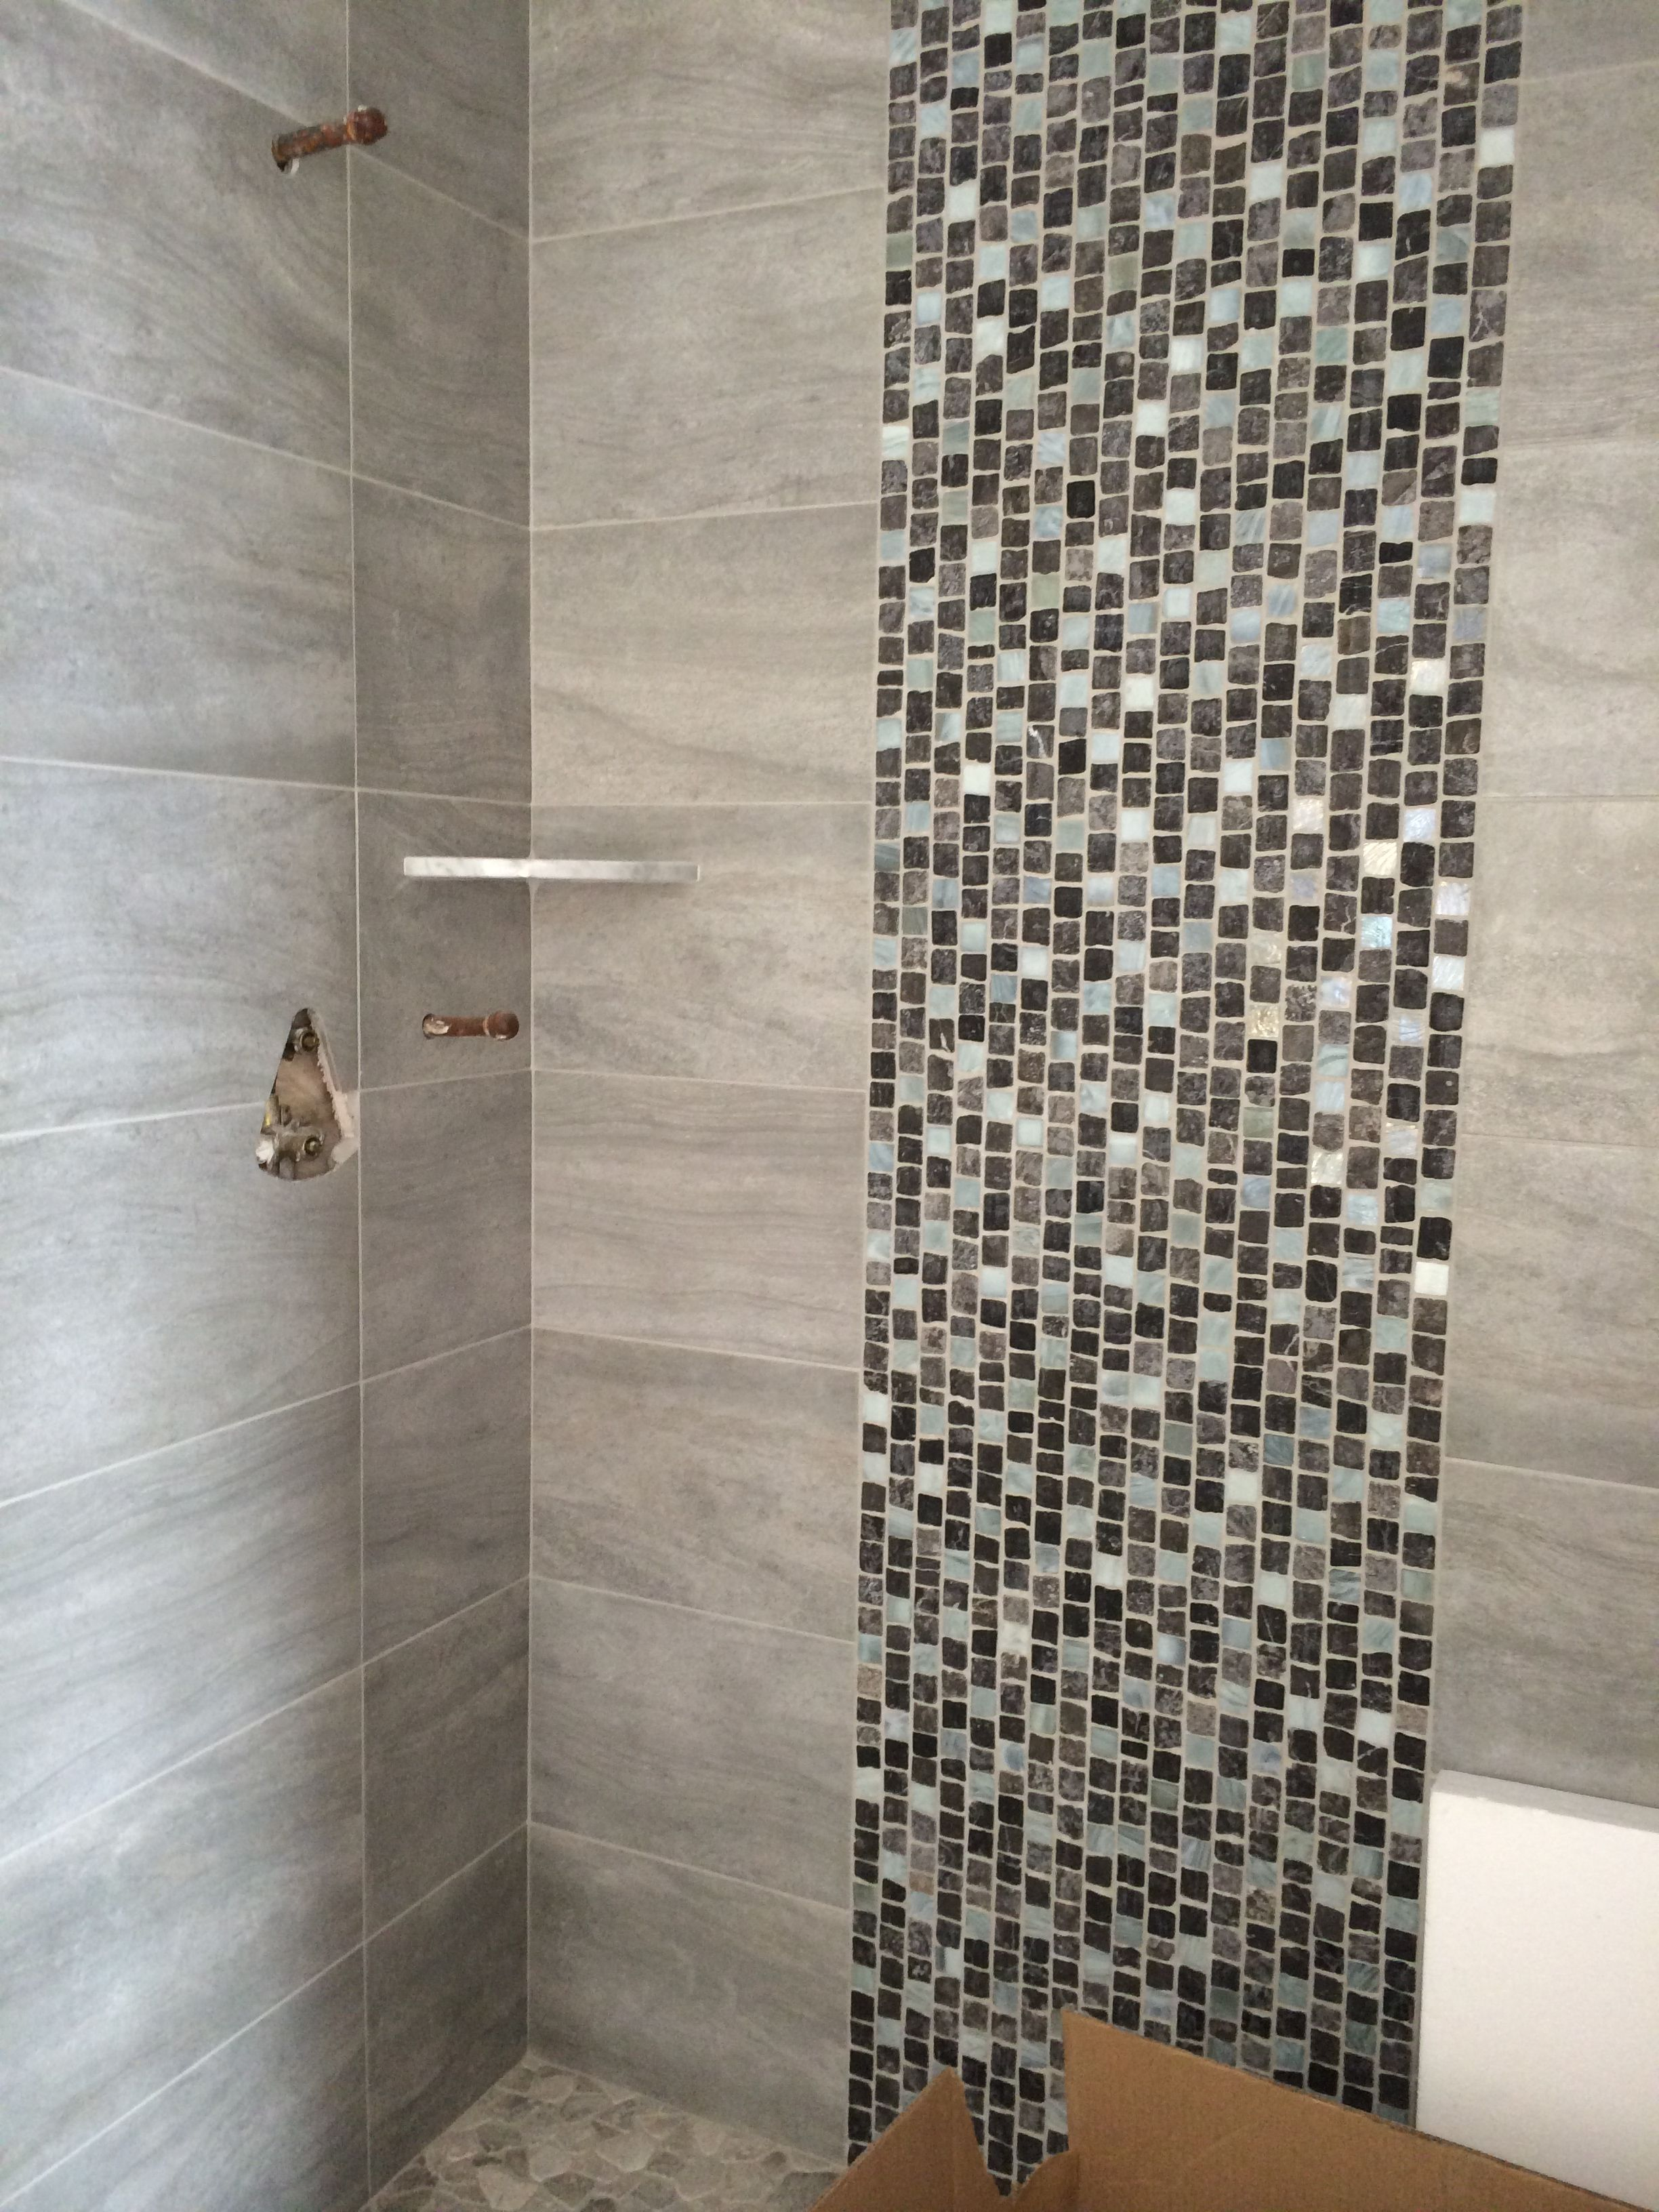 12 X 24 Porcelain Shower Walls W Stone And Glass Tile